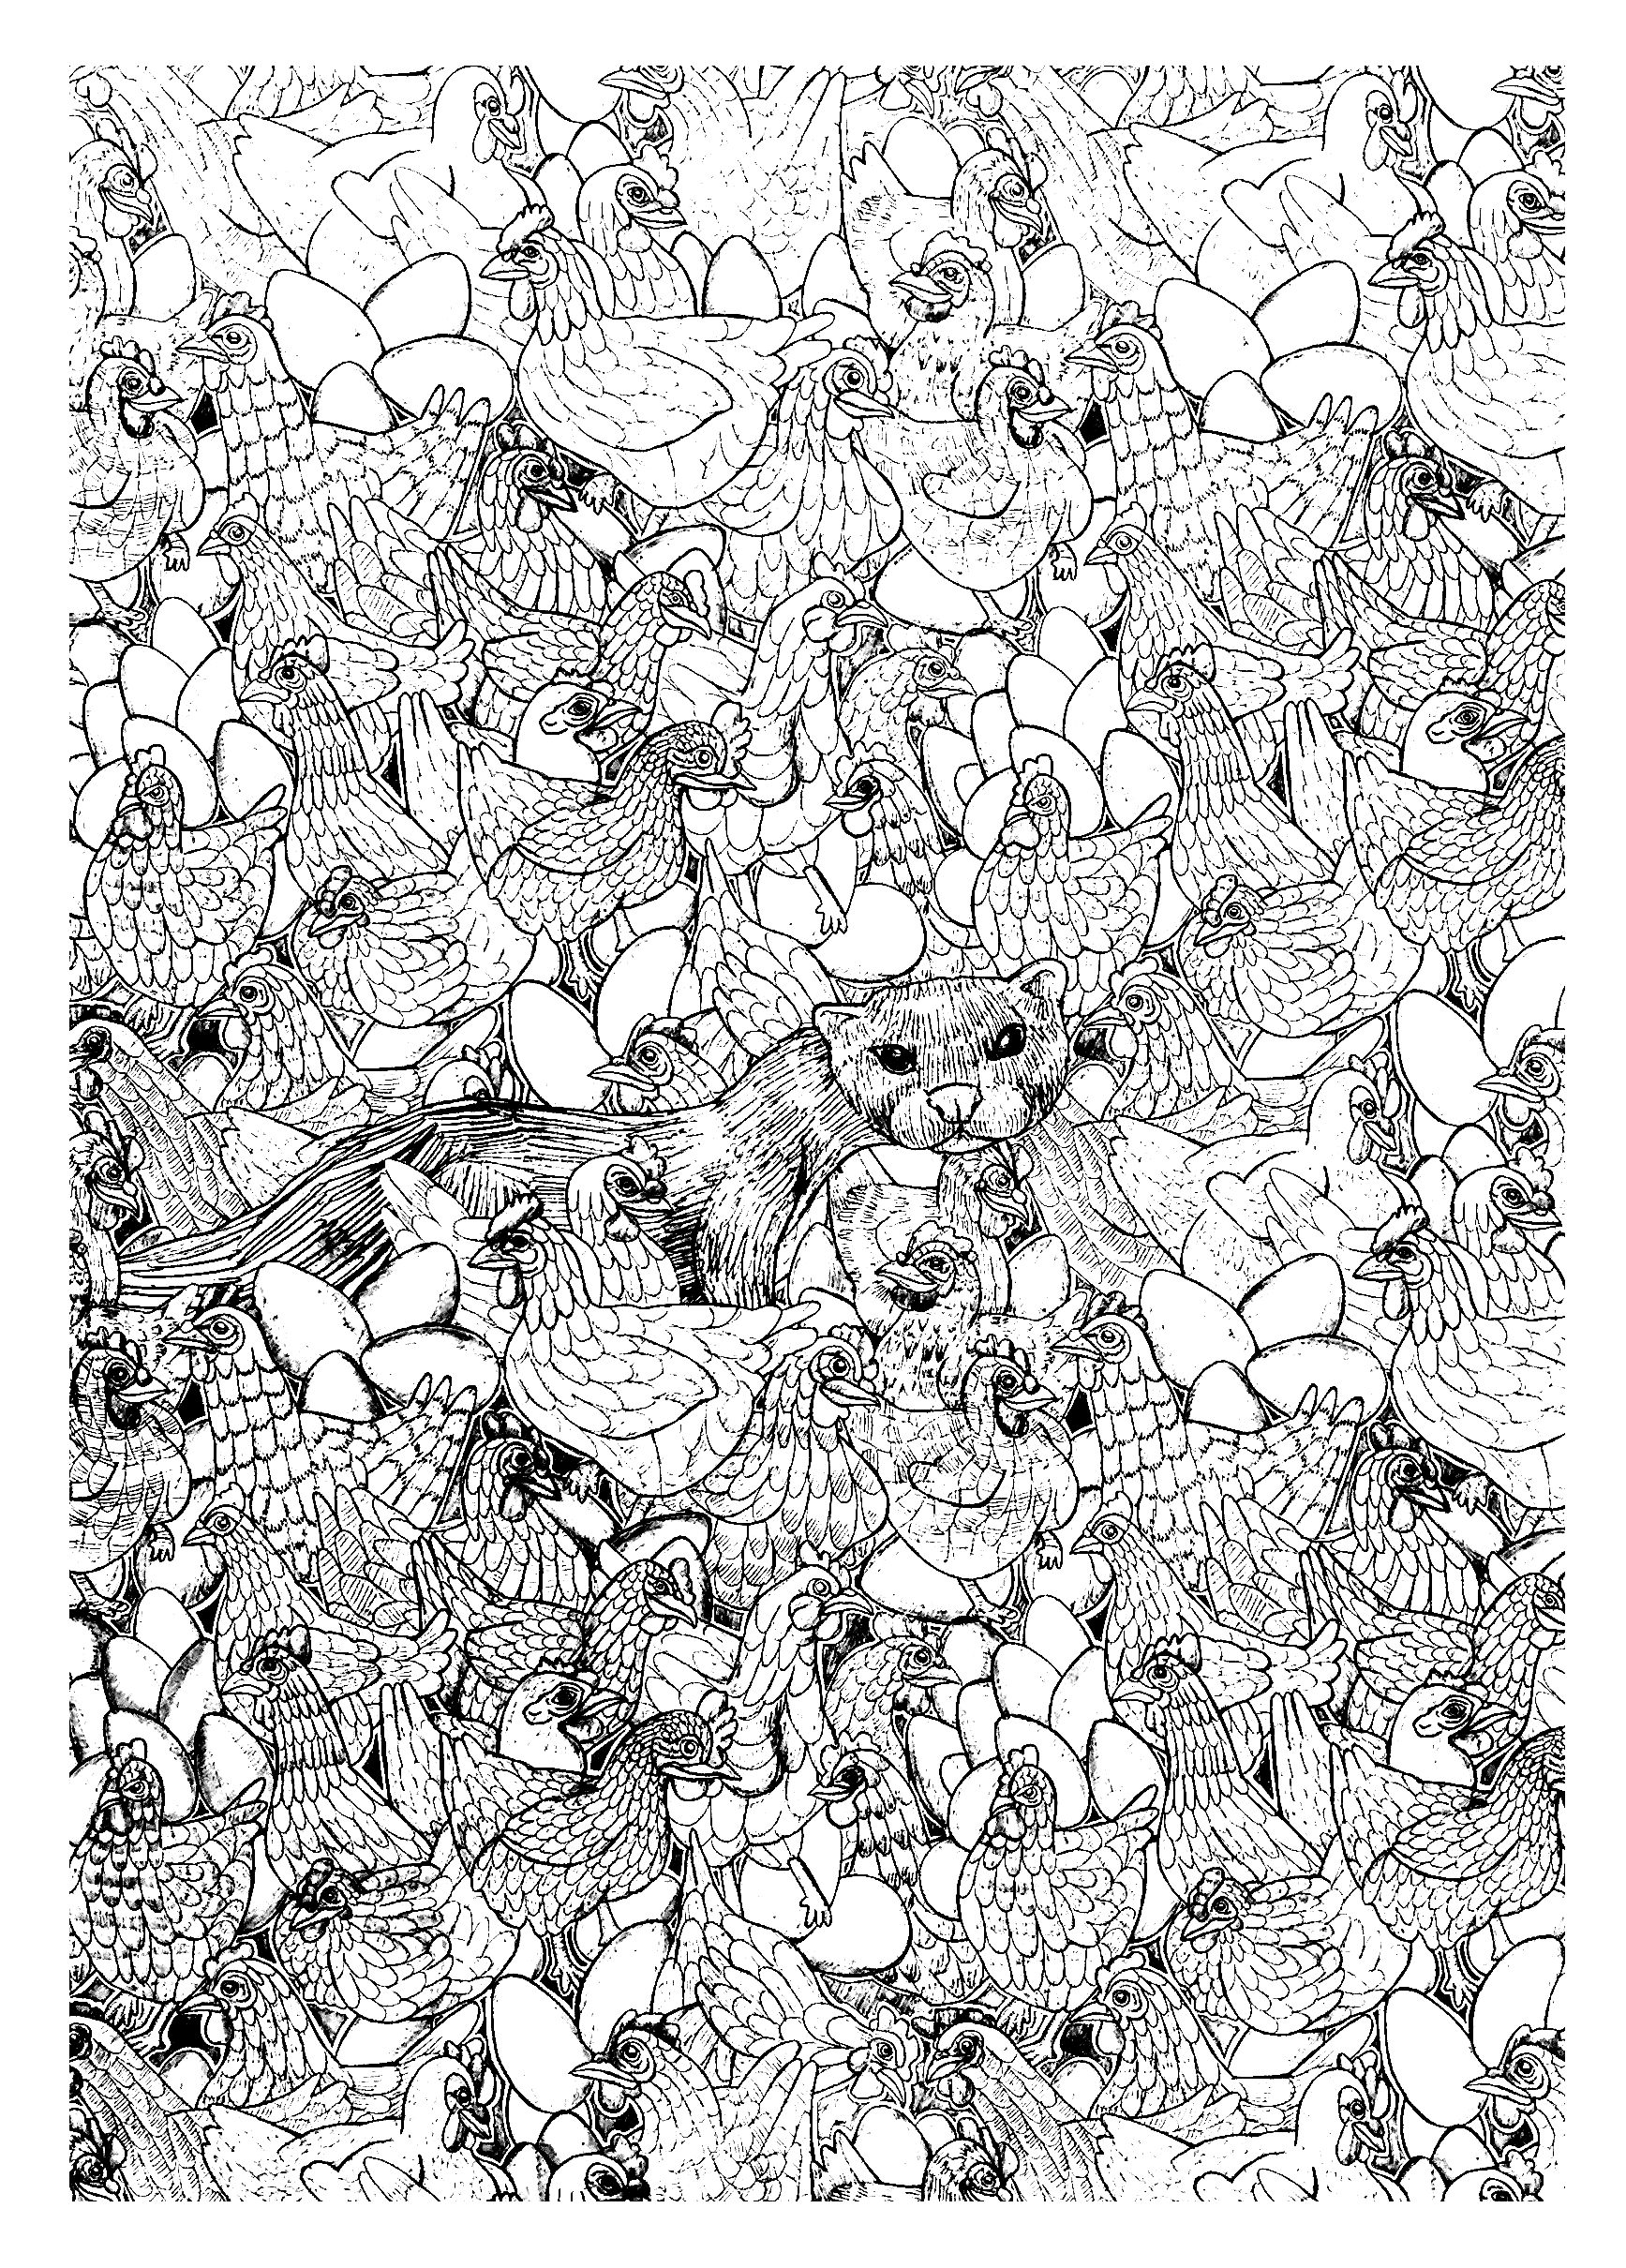 Uncategorized Ferret Coloring Pages hen ferret complex animals coloring pages for adults justcolor drawing to color with chickens and a from the gallery